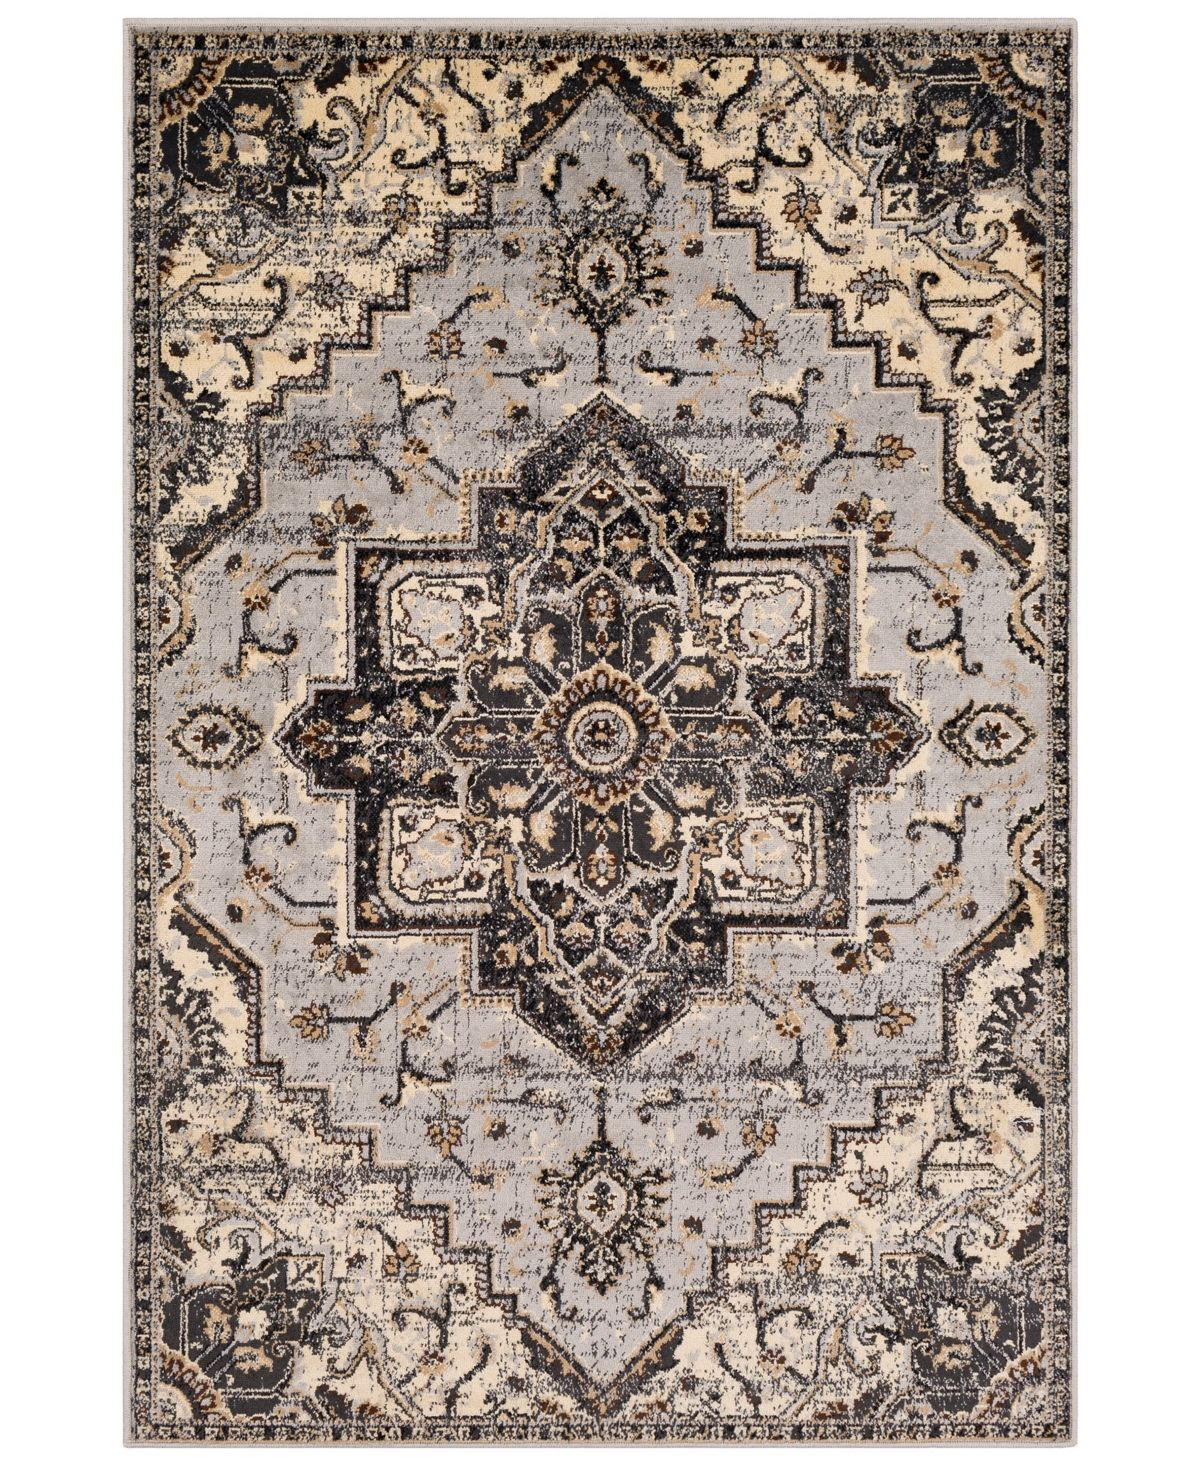 Surya Paramount Par 1091 Medium Gray 8 10 X 12 9 Area Rug